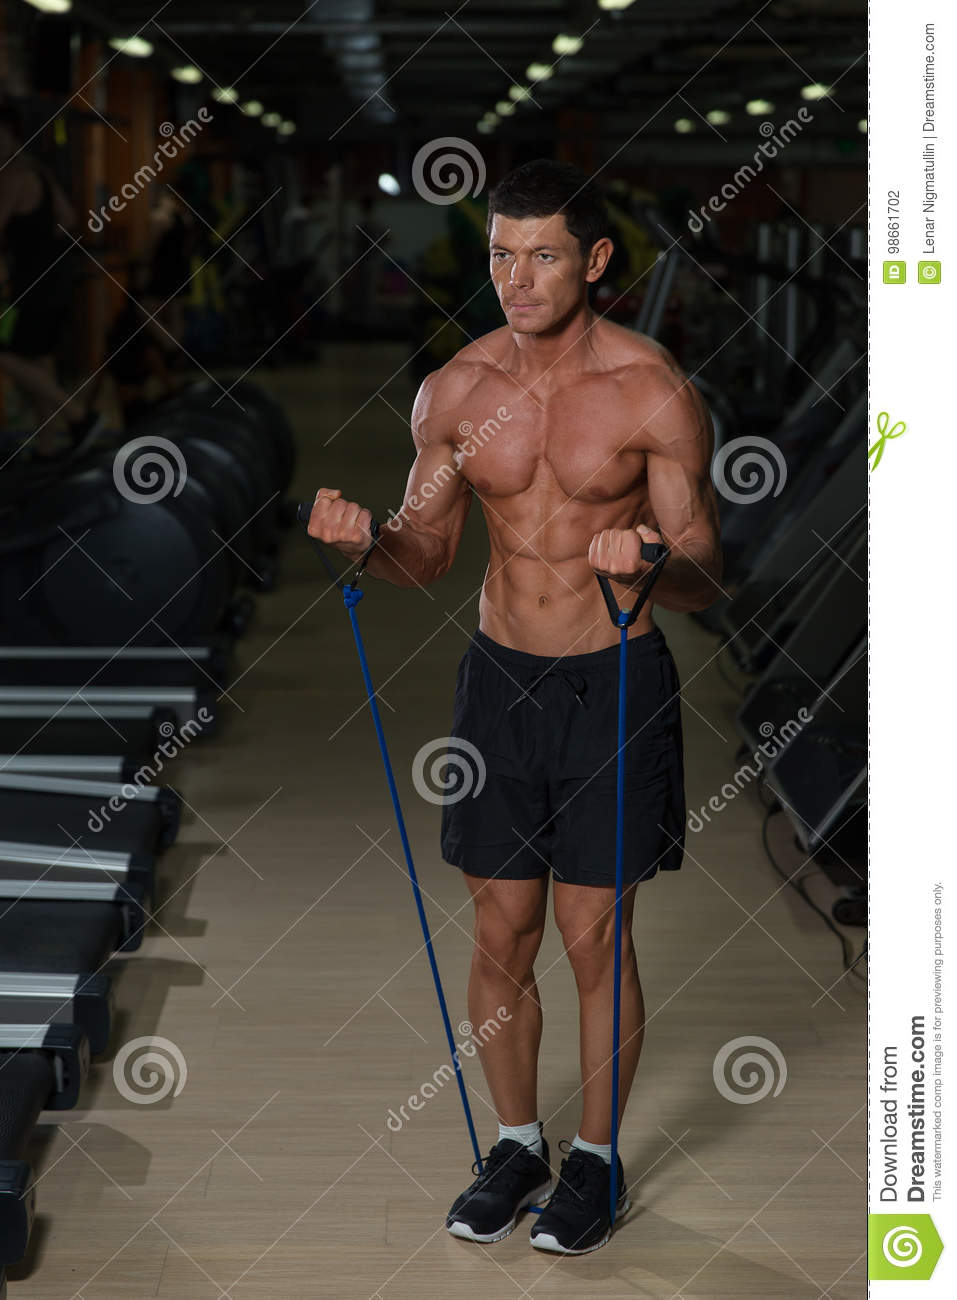 Fitness man exercising with stretching band in the gym. Muscular sports man exercising with elastic rubber band. Guy working out w